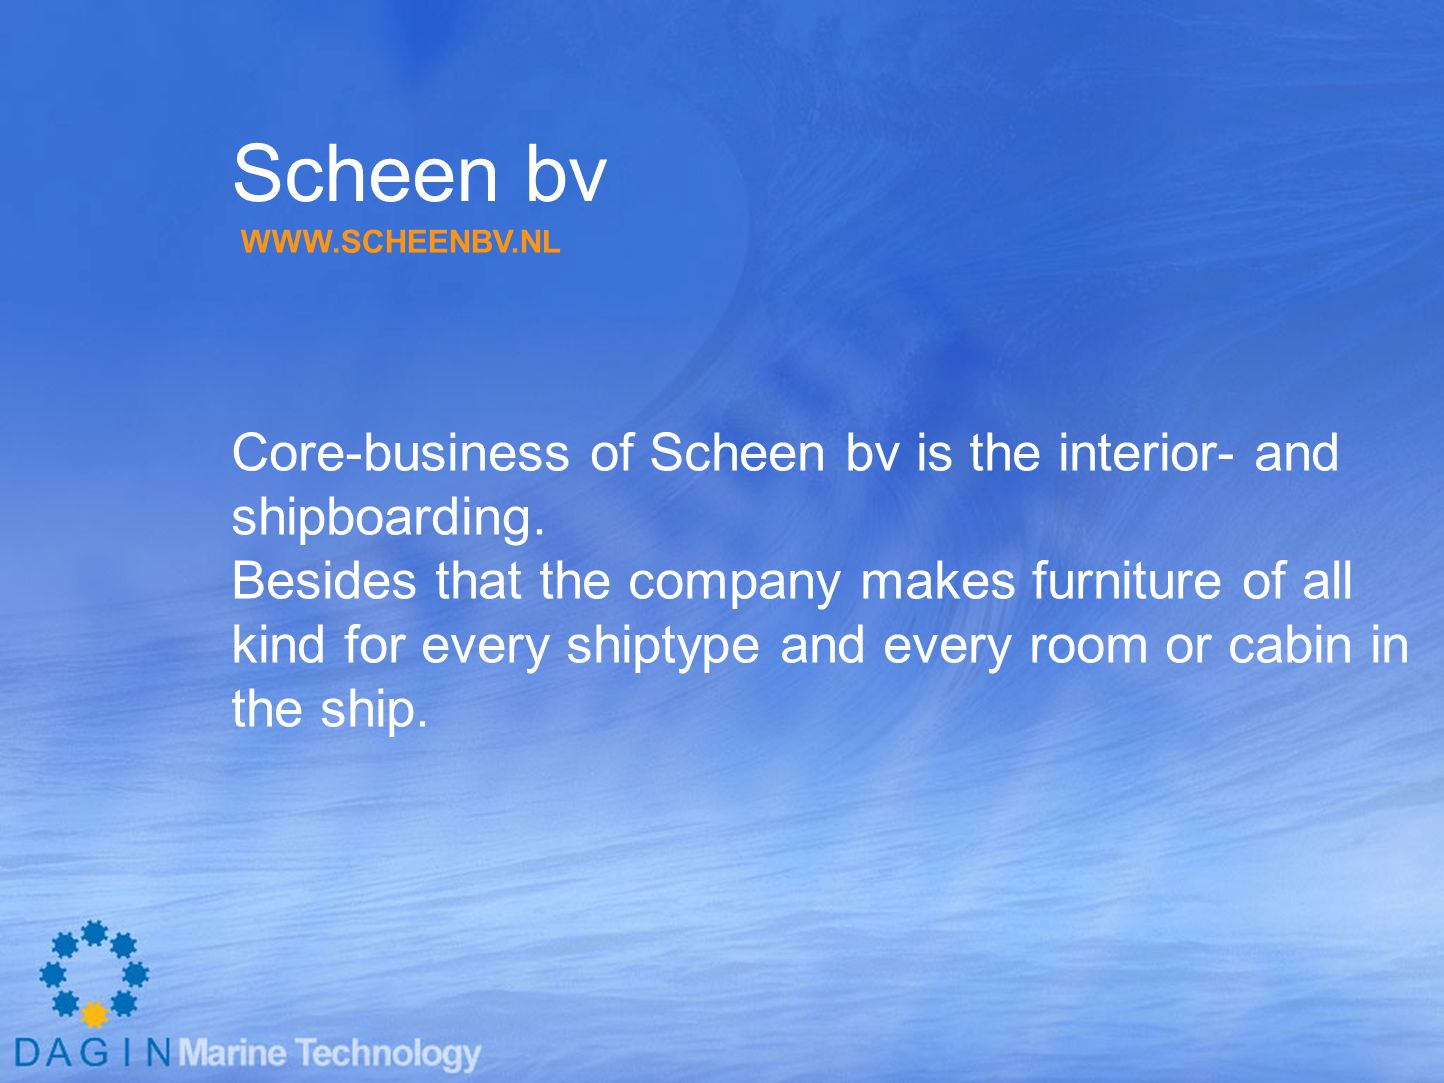 Scheen bv Core-business of Scheen bv is the interior- and